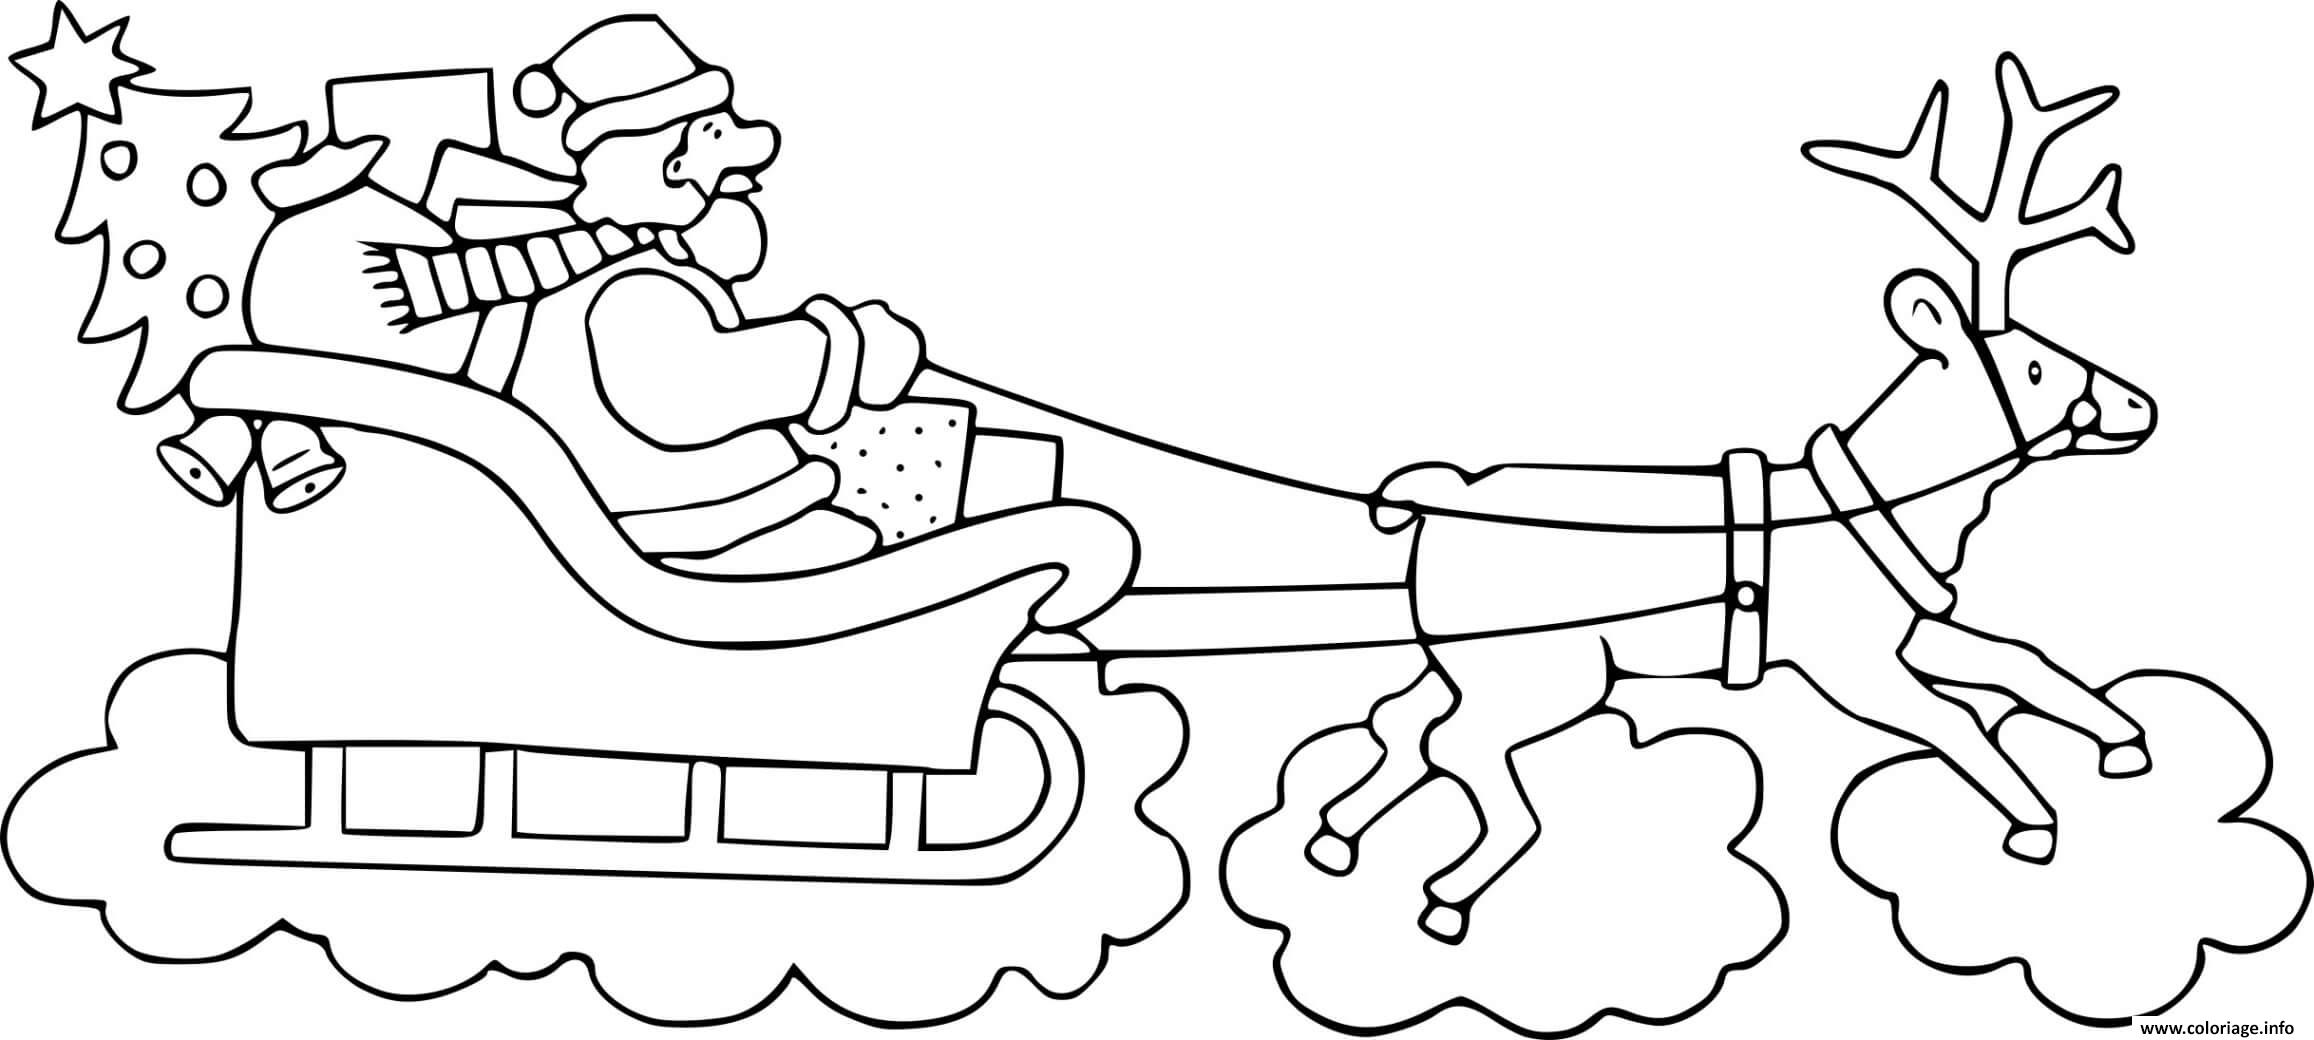 Facile Pere Noel Traineau Dessin 11 Dans Coloriage Inspiration with Pere Noel Traineau Dessin